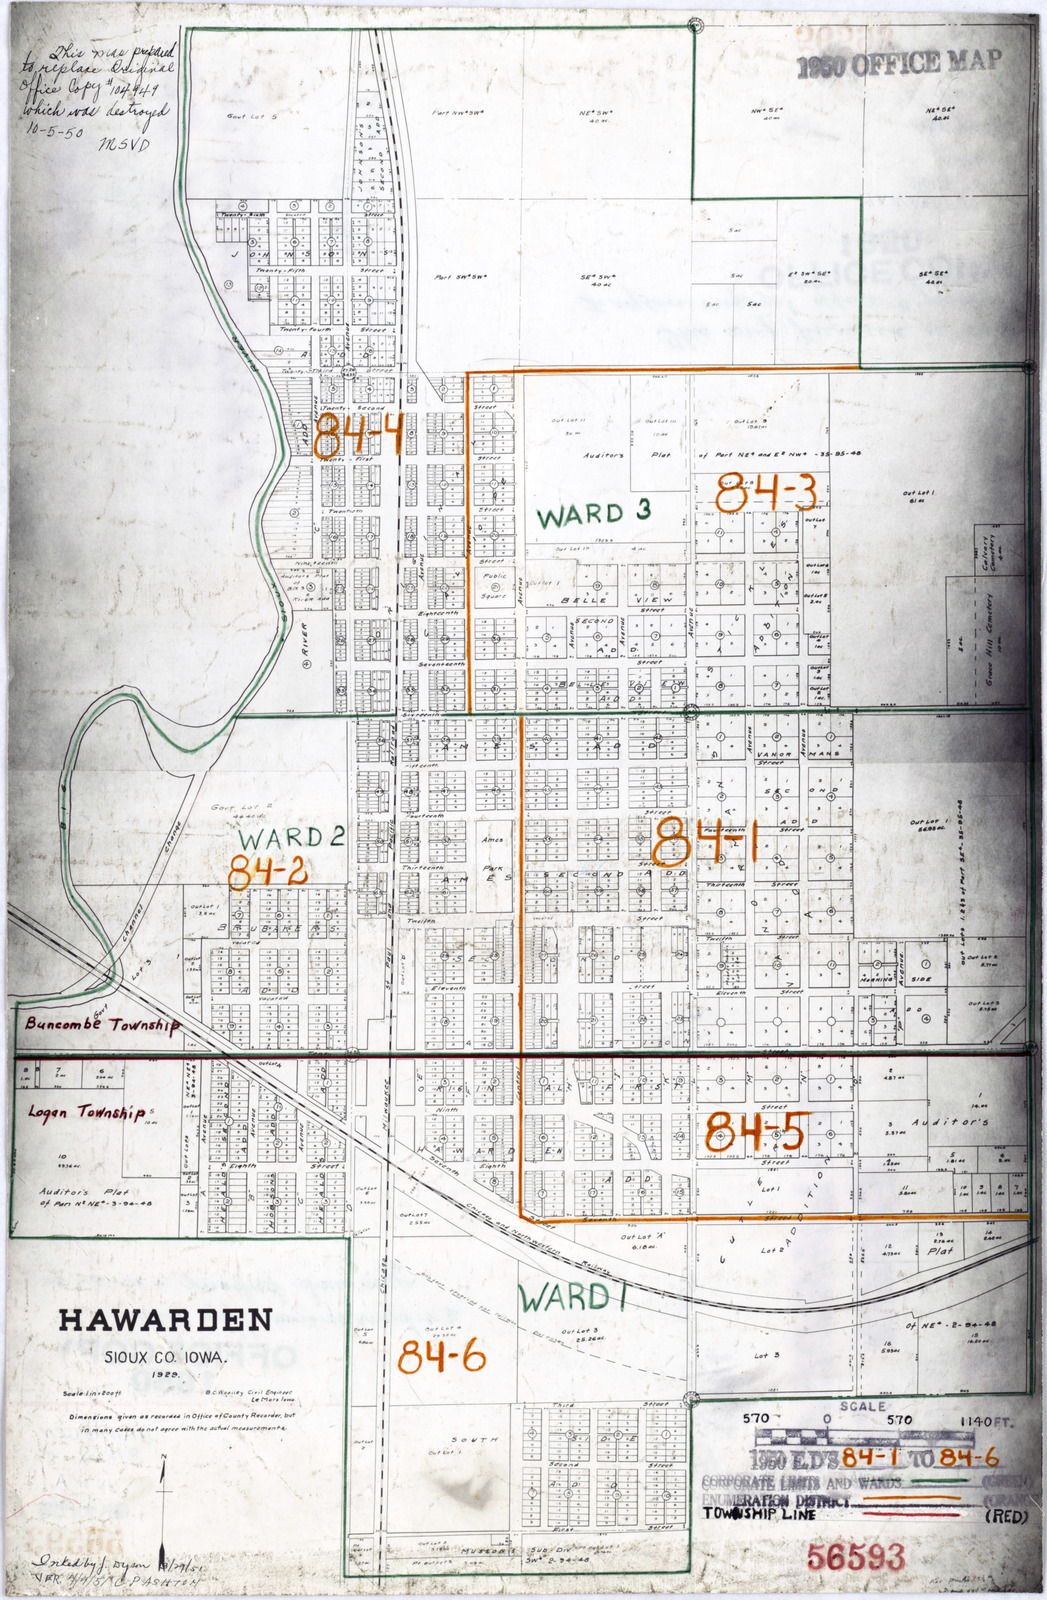 Sioux County Iowa Map.1950 Census Enumeration District Maps Iowa Ia Sioux County